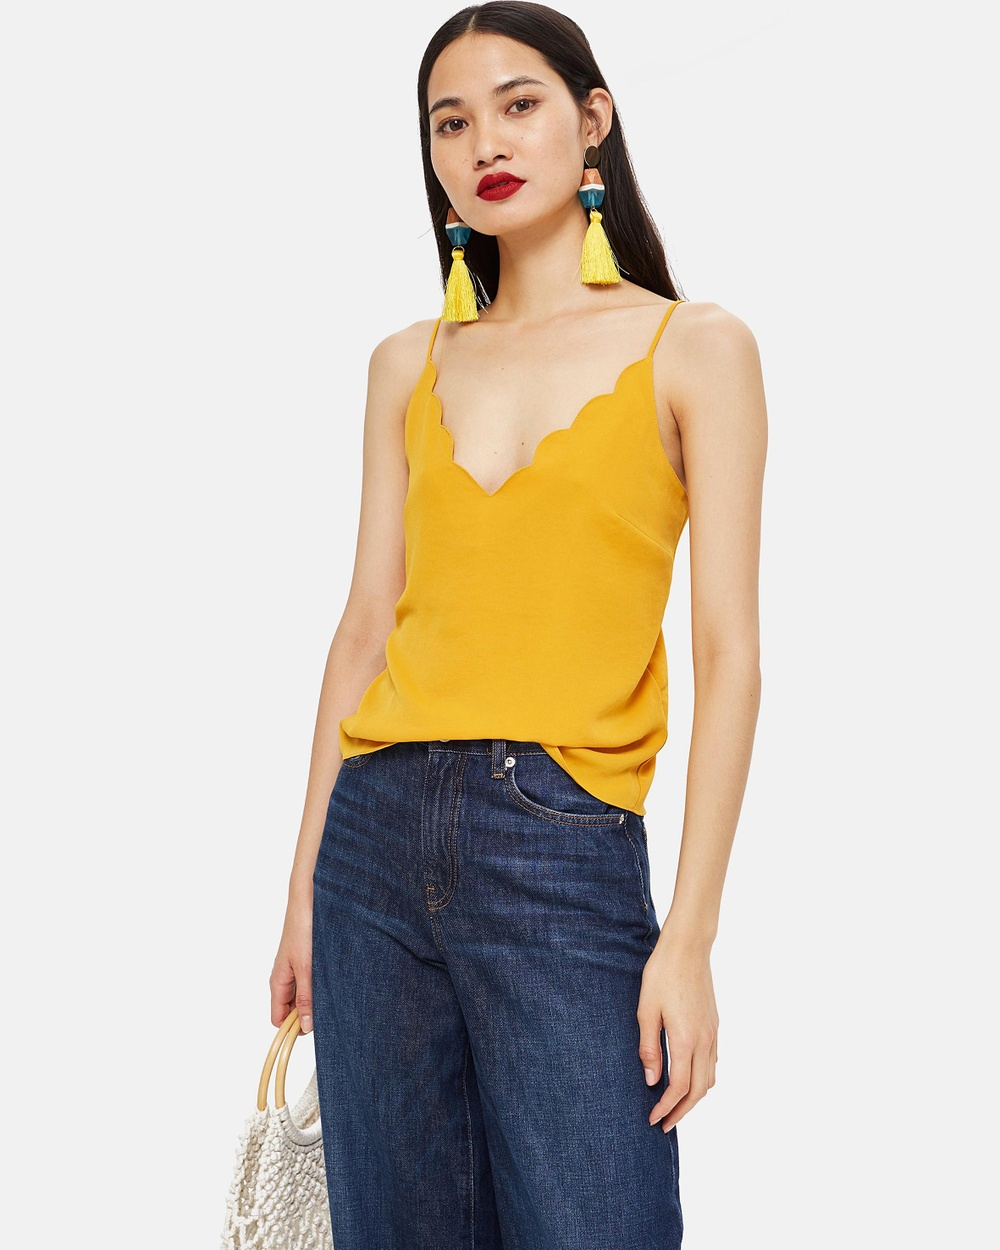 TOPSHOP Scallop Cami Tops Yellow Scallop Cami